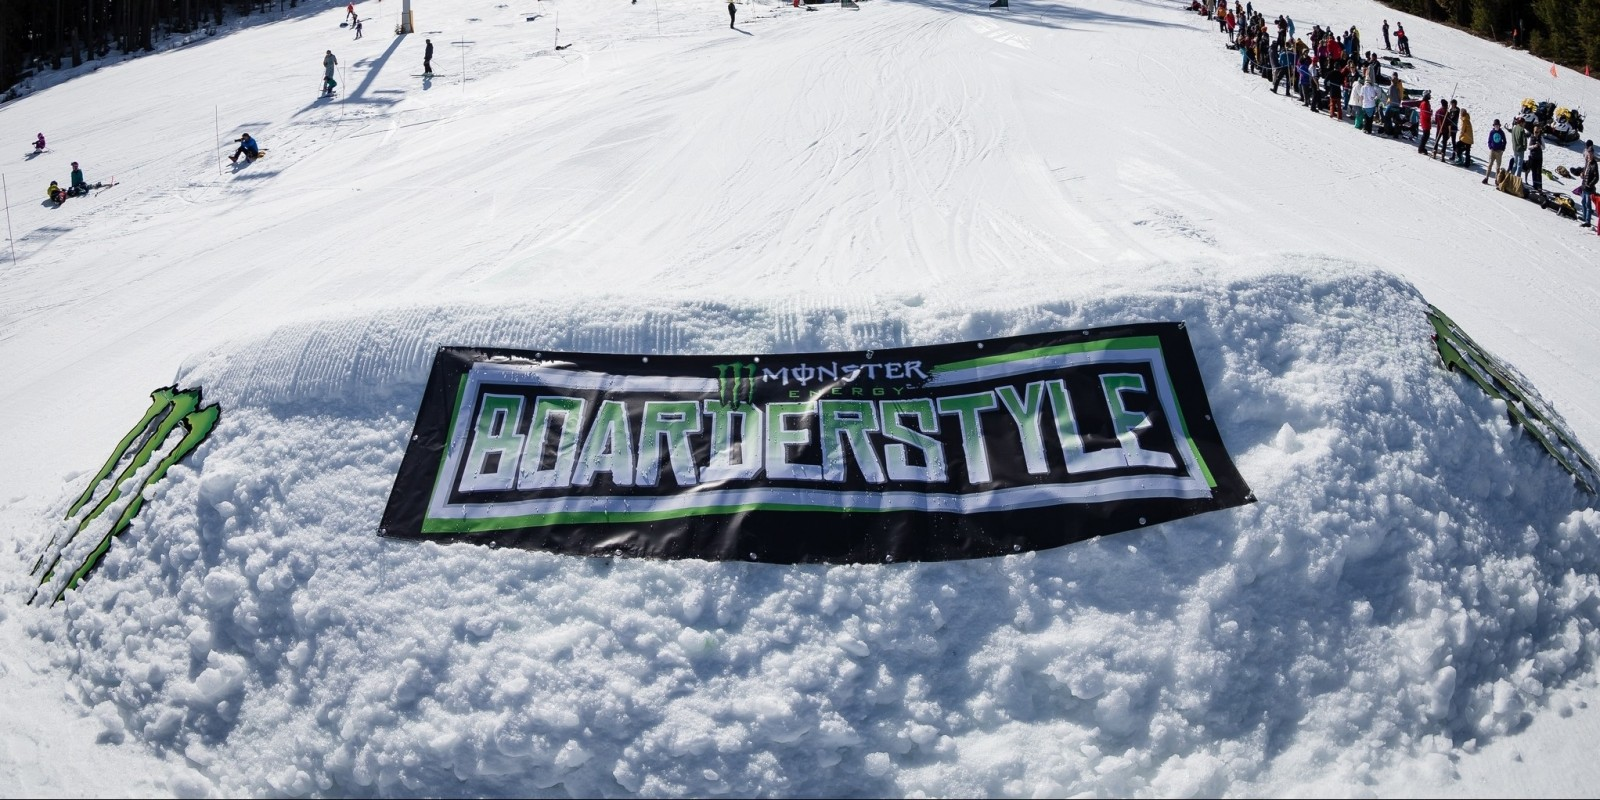 Monster Energy at the 2016 Boarderstyle Nationals in Fernie, BC